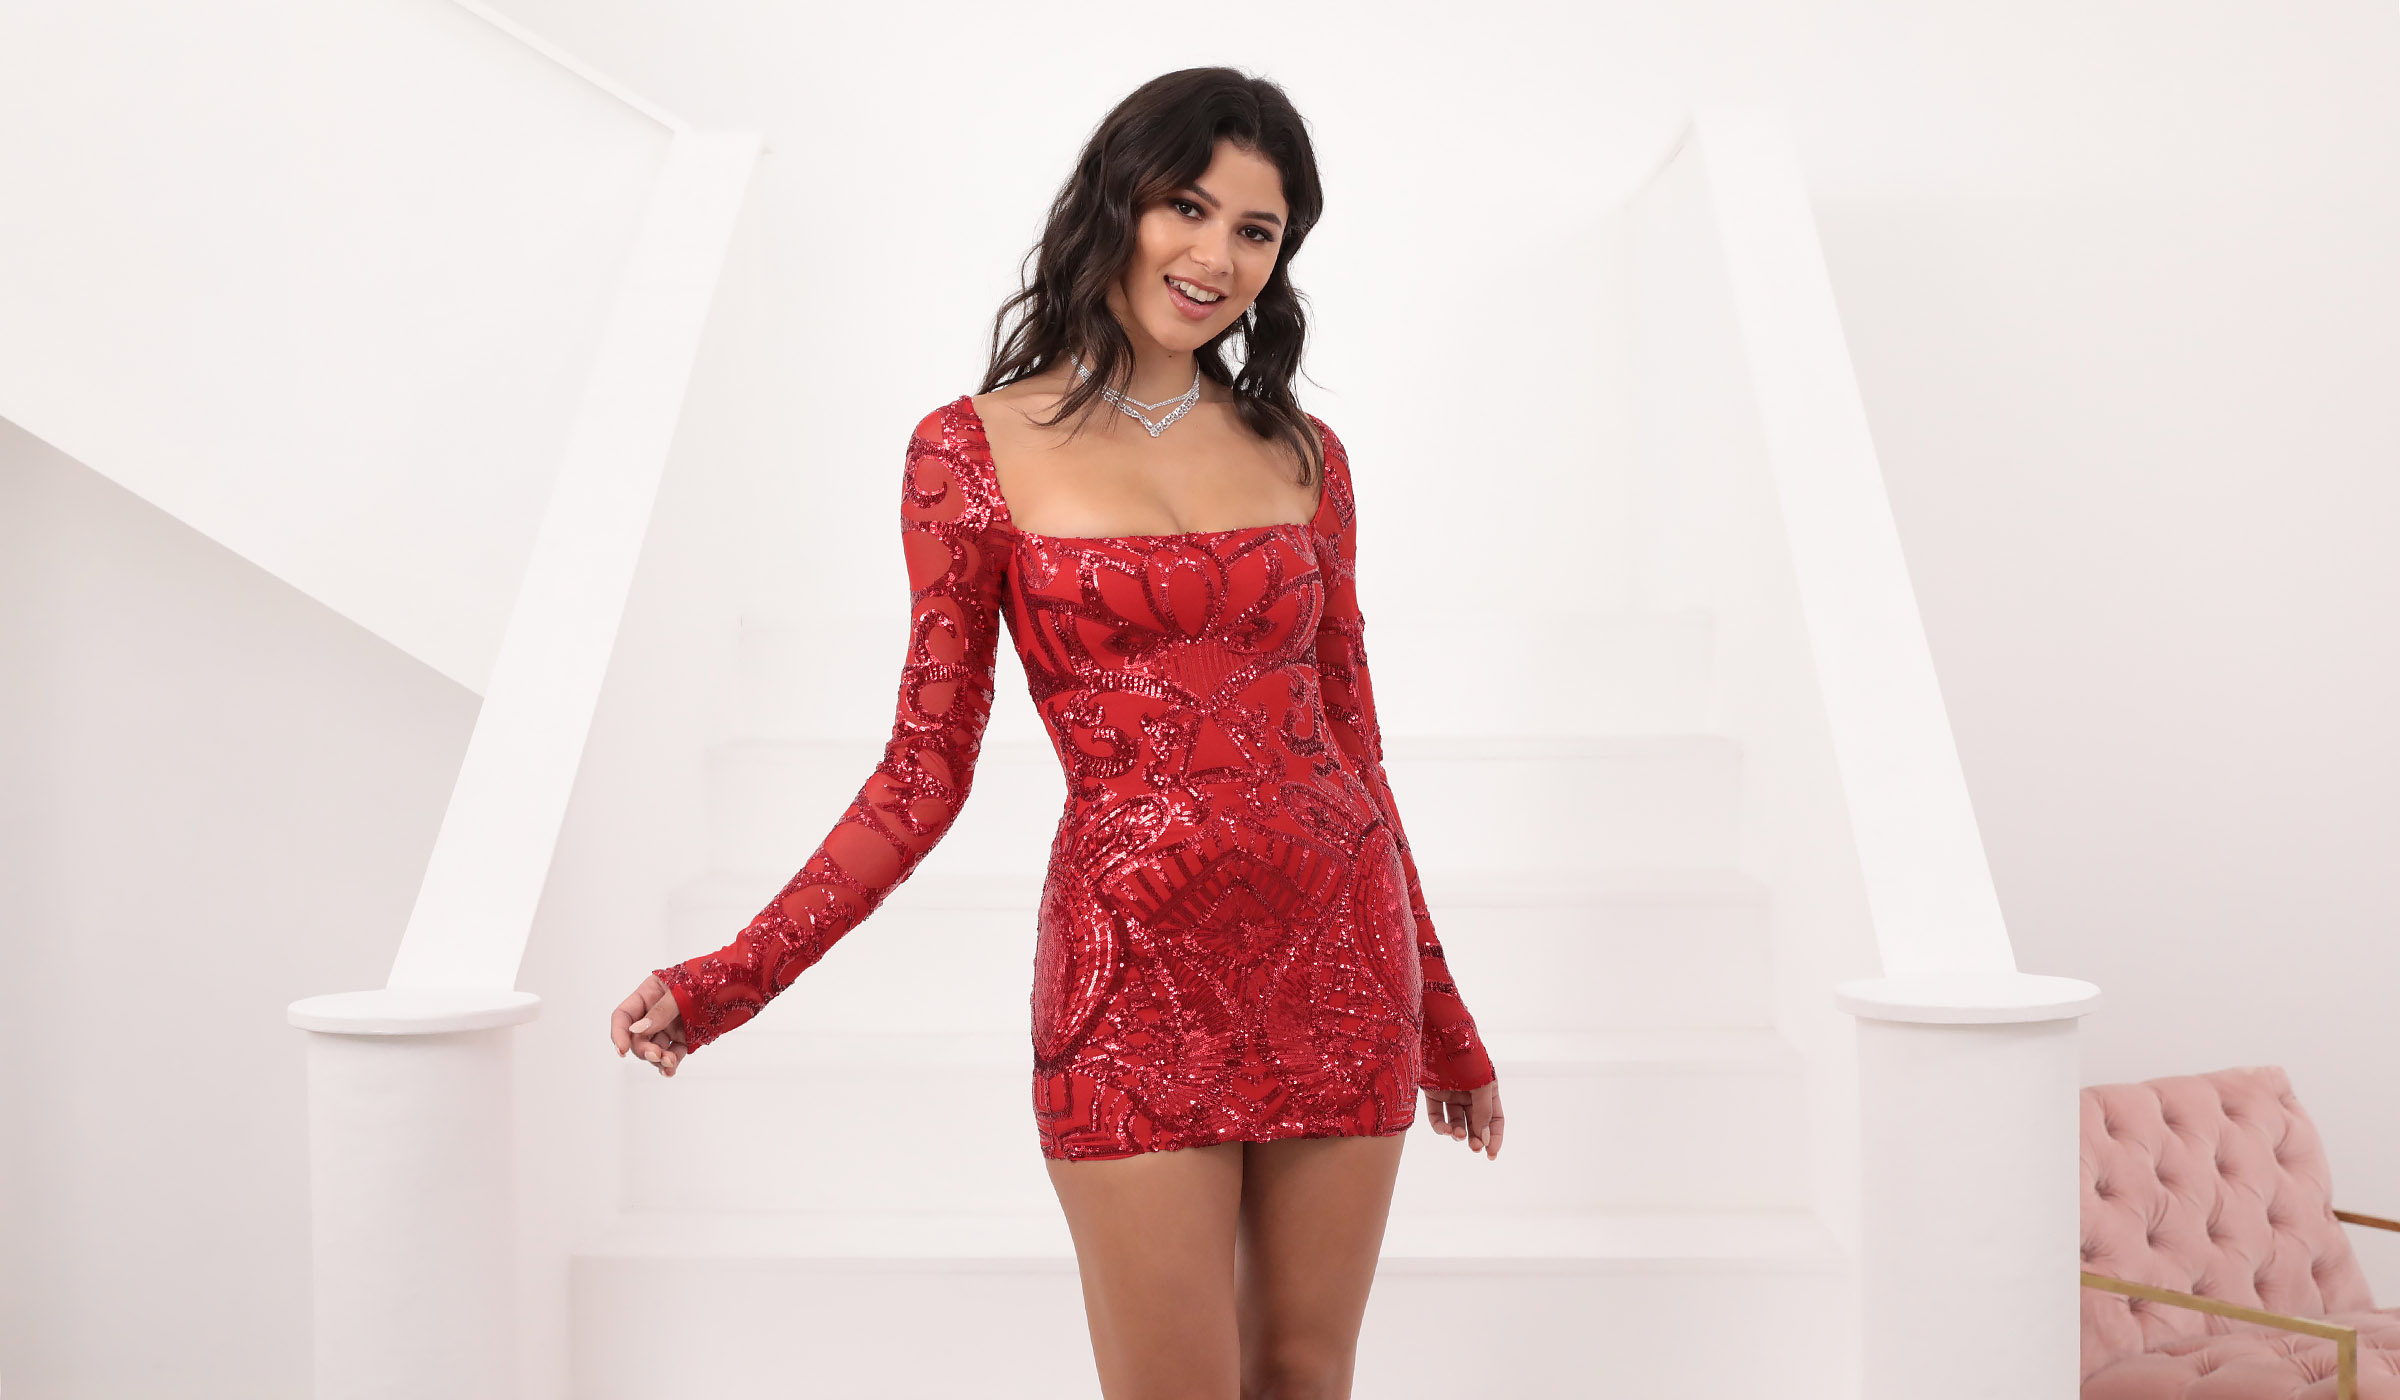 Giulia Sparkling Square Neck Dress in Red Sequins